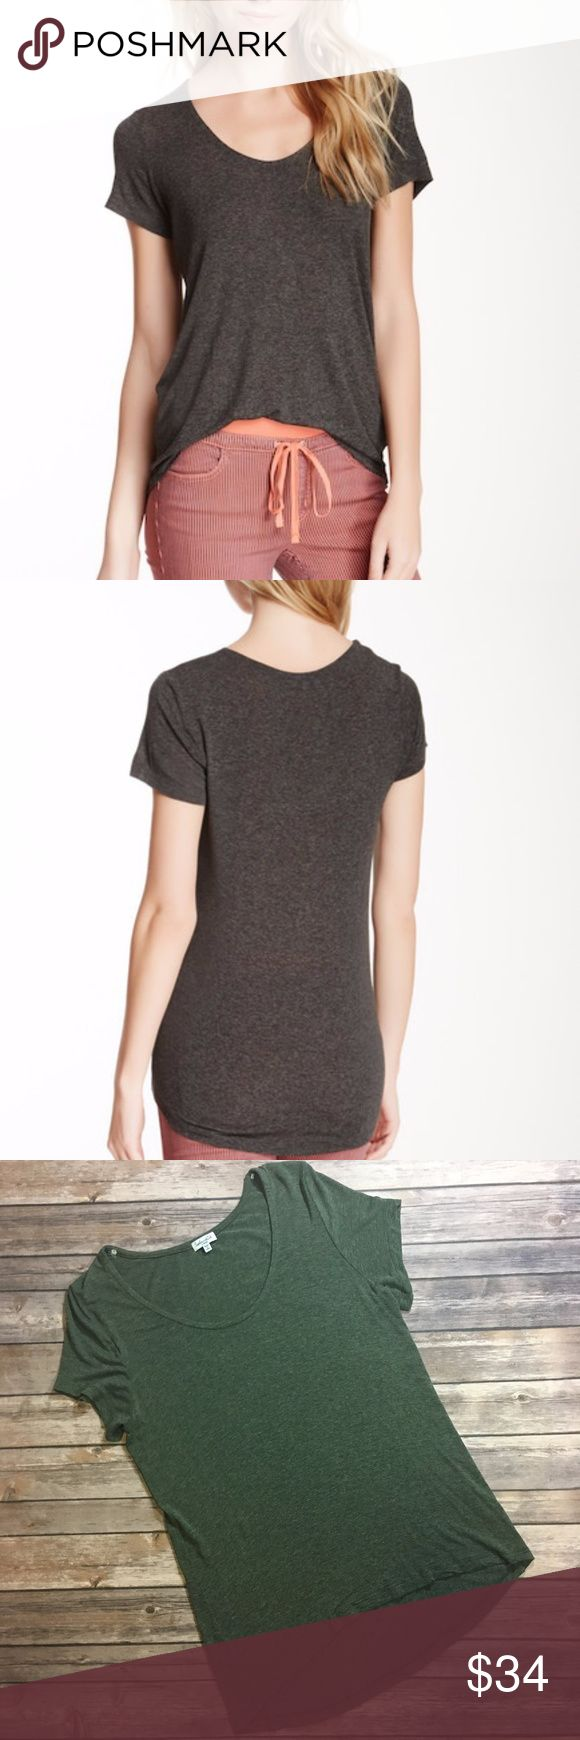 """Splendid Drapey Lux Short Sleeve T hi-lo scoopneck Currently sold out online! Scoop neck hi-lo tee from Splendid has a casual appeal with its slinky fabric style and subtly curved back hem. In a beautiful heathered green color. A stretchy and very very soft top! Stock photos show the same shirt, but a different color, in order to show fit. This shirt is exact one show in my photos-a grey-green heathered color  Perfect, like new condition. No flaws or wear.  Measurements: bust 18"""", length in…"""